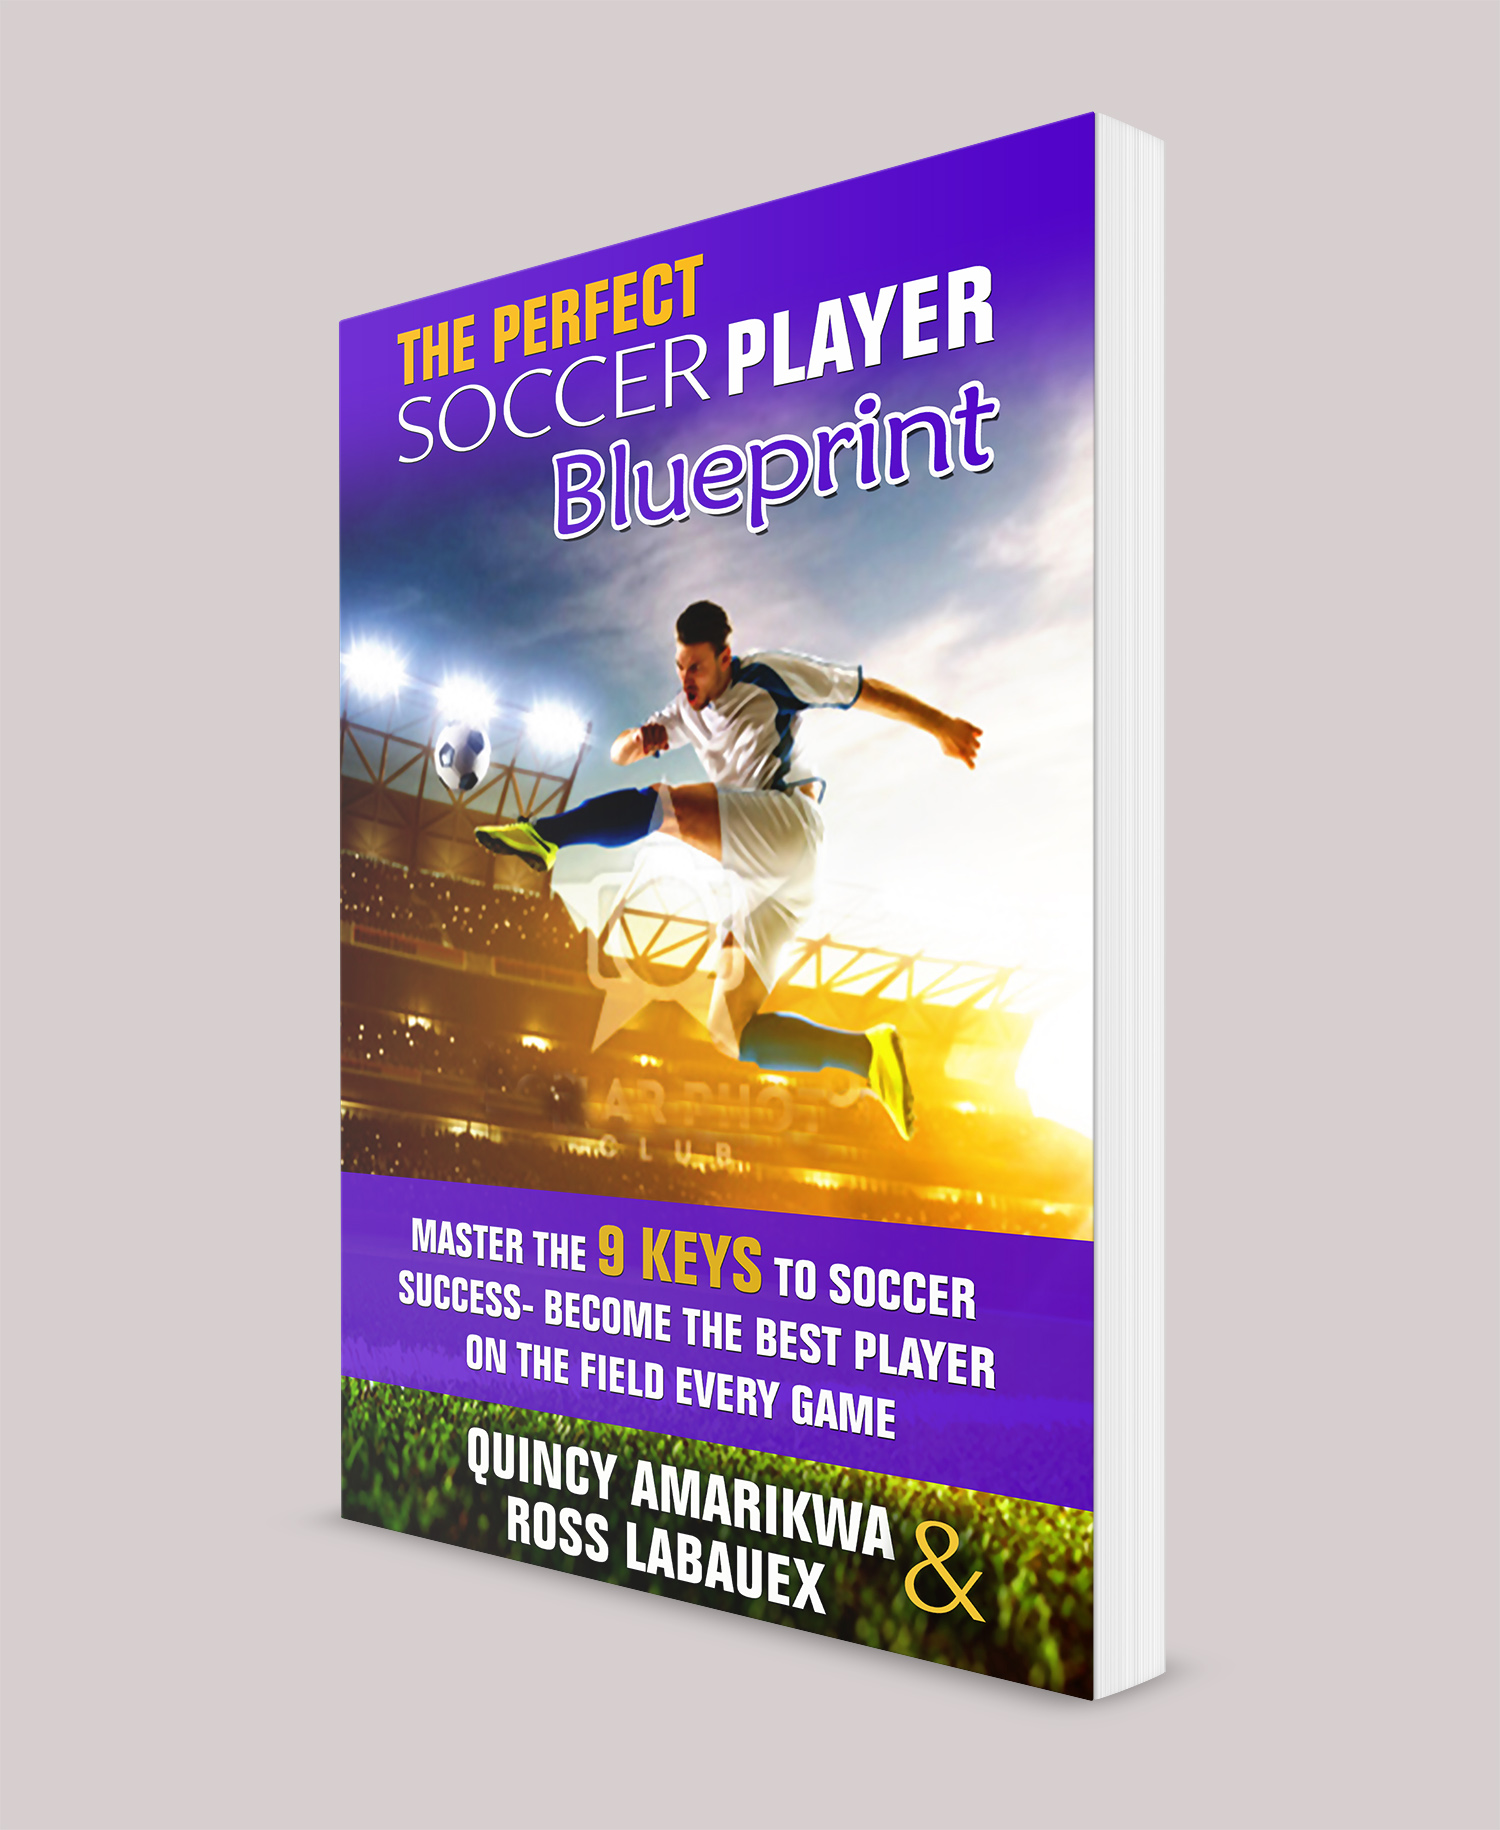 Free book perfect soccer player blueprint ship my free copy of theperfect soccerplayerblueprint now im ready to get started ship me my free copy now malvernweather Images